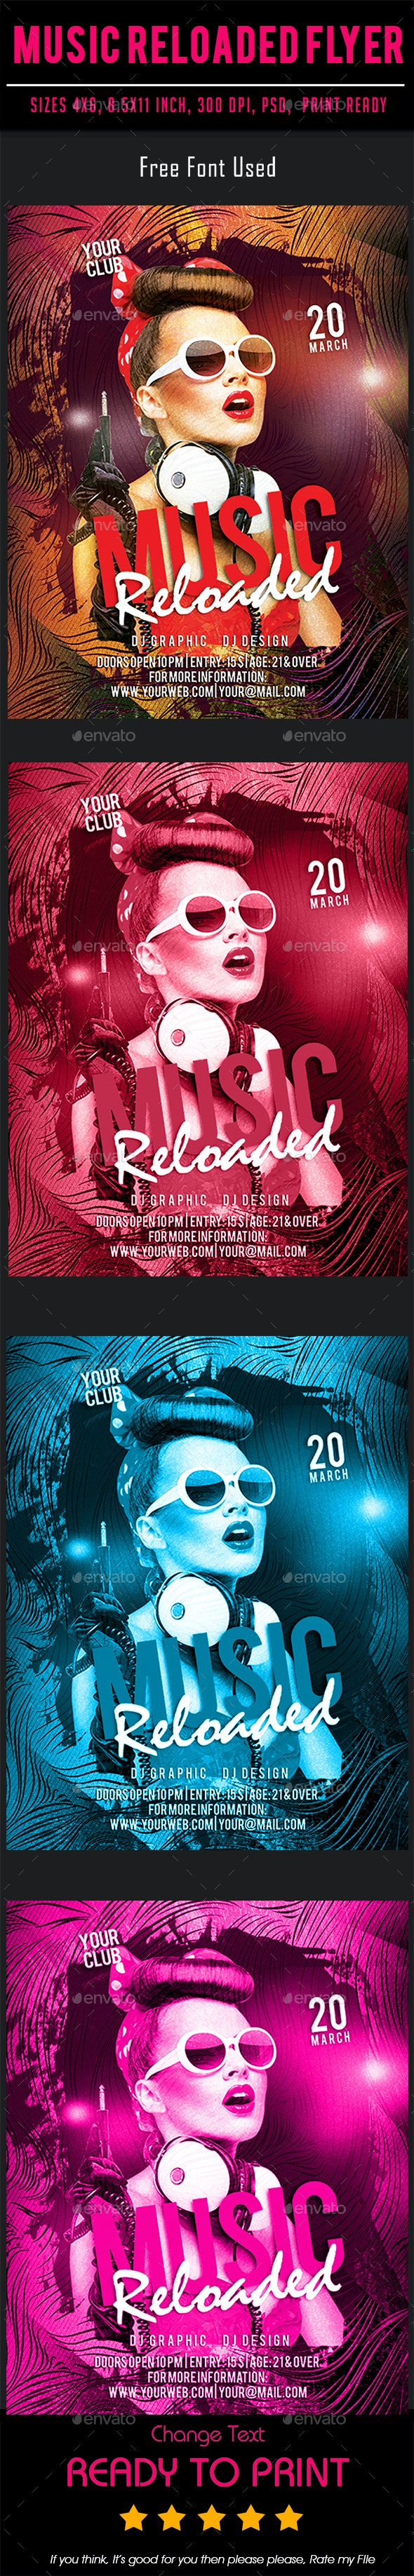 Music Reloaded Flyer - Events Flyers